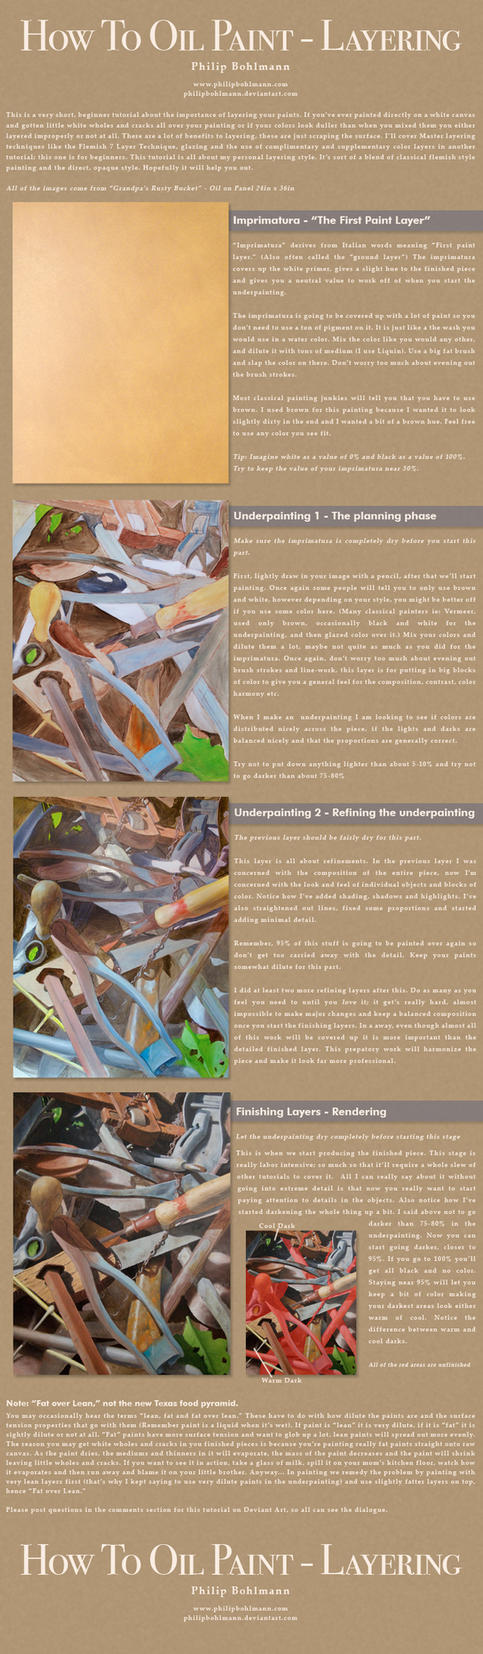 How to Oil Paint - Layering by PhilipBohlmann